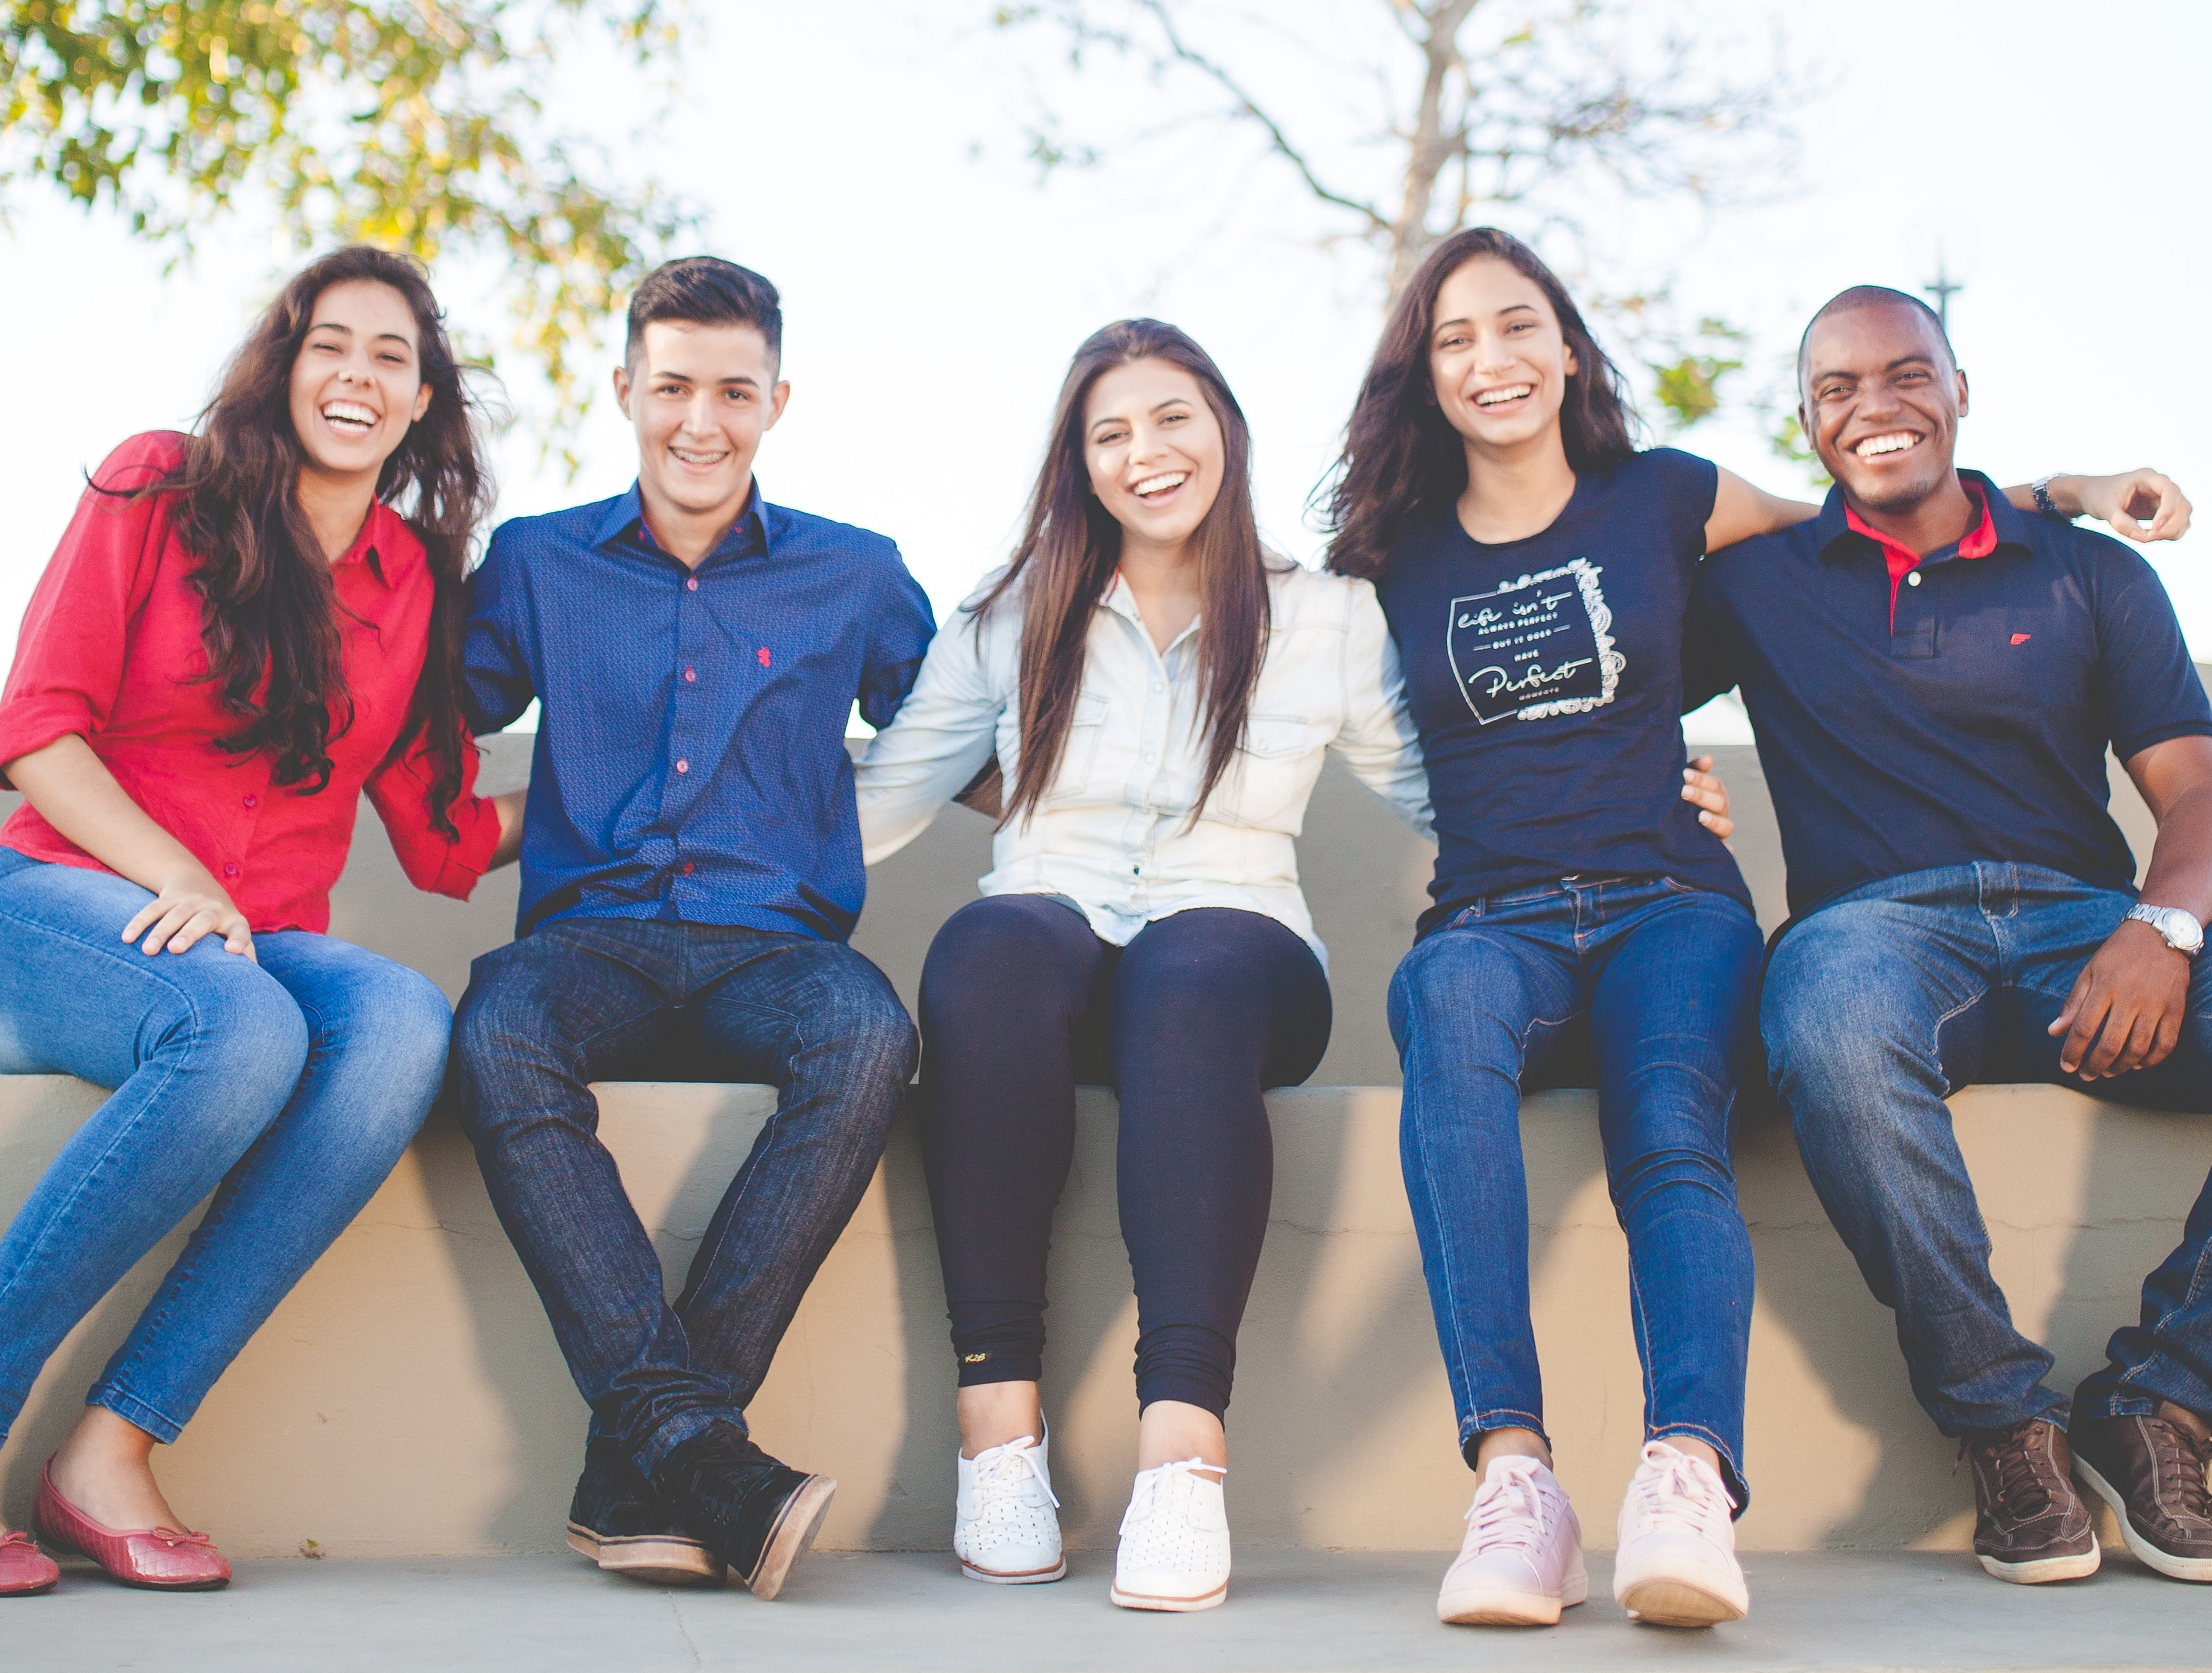 A group of young adults wearing read and blue smiling at the camera.